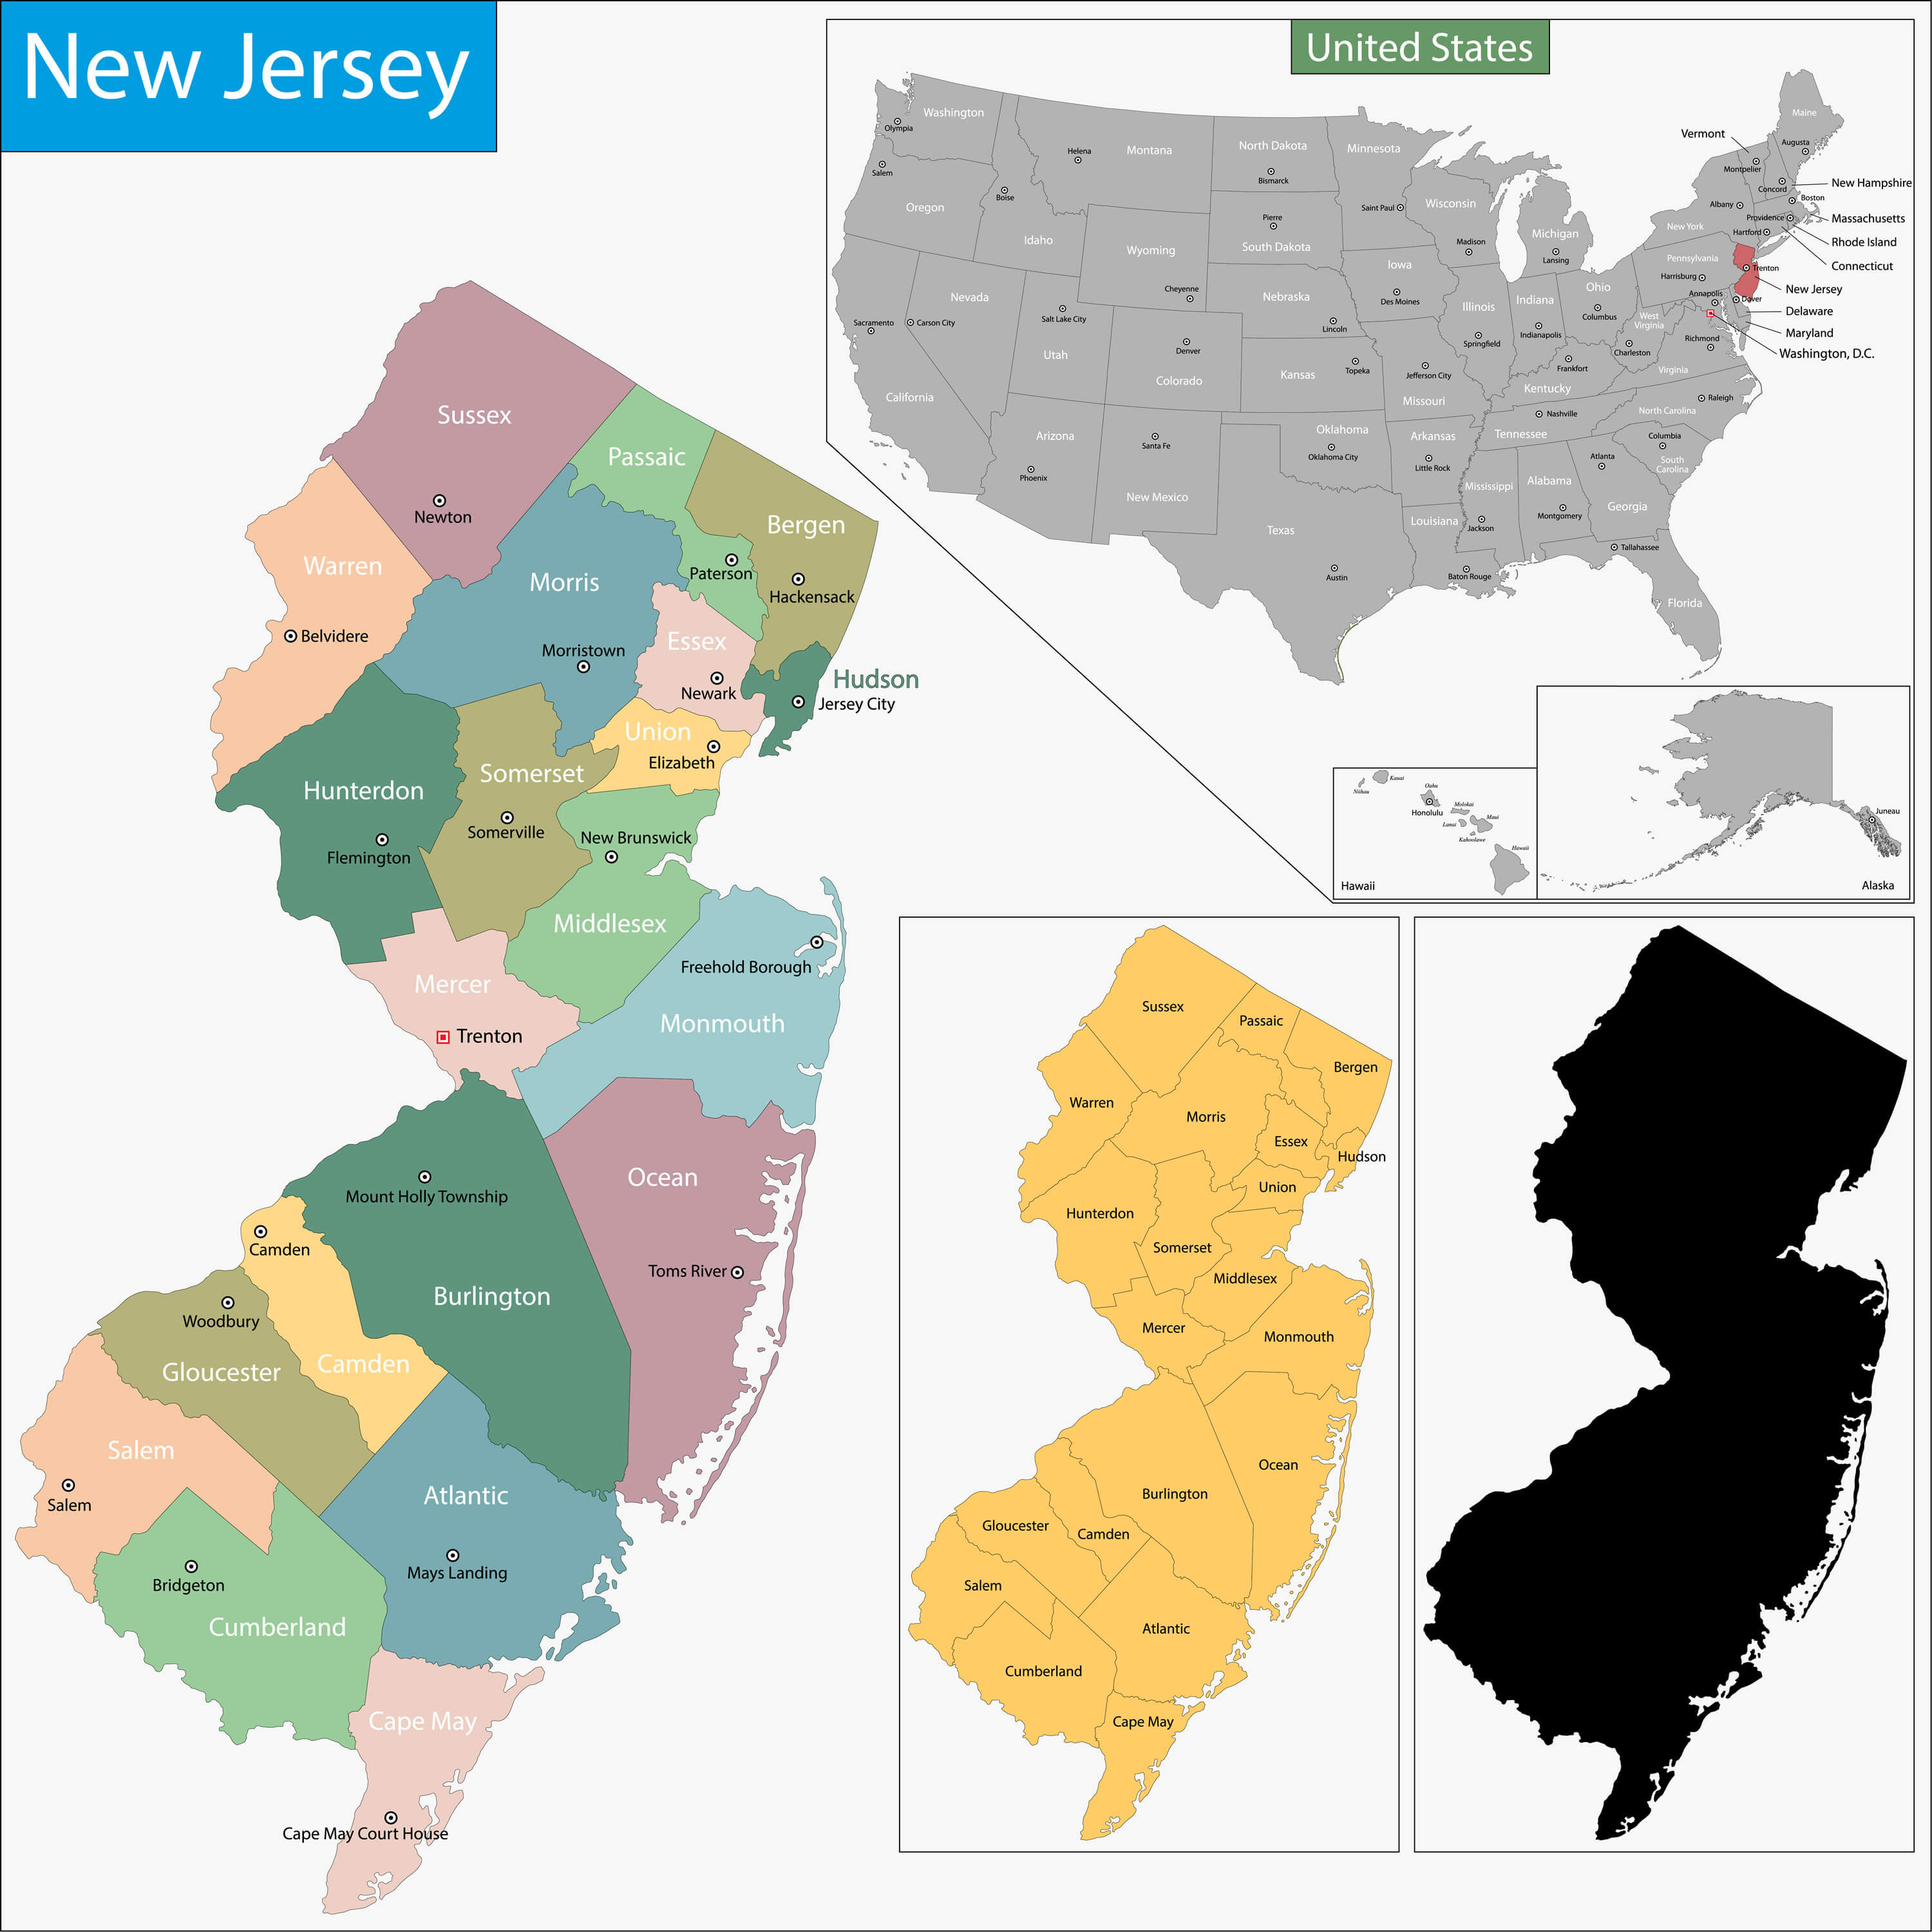 New Jersey Map - Guide of the World